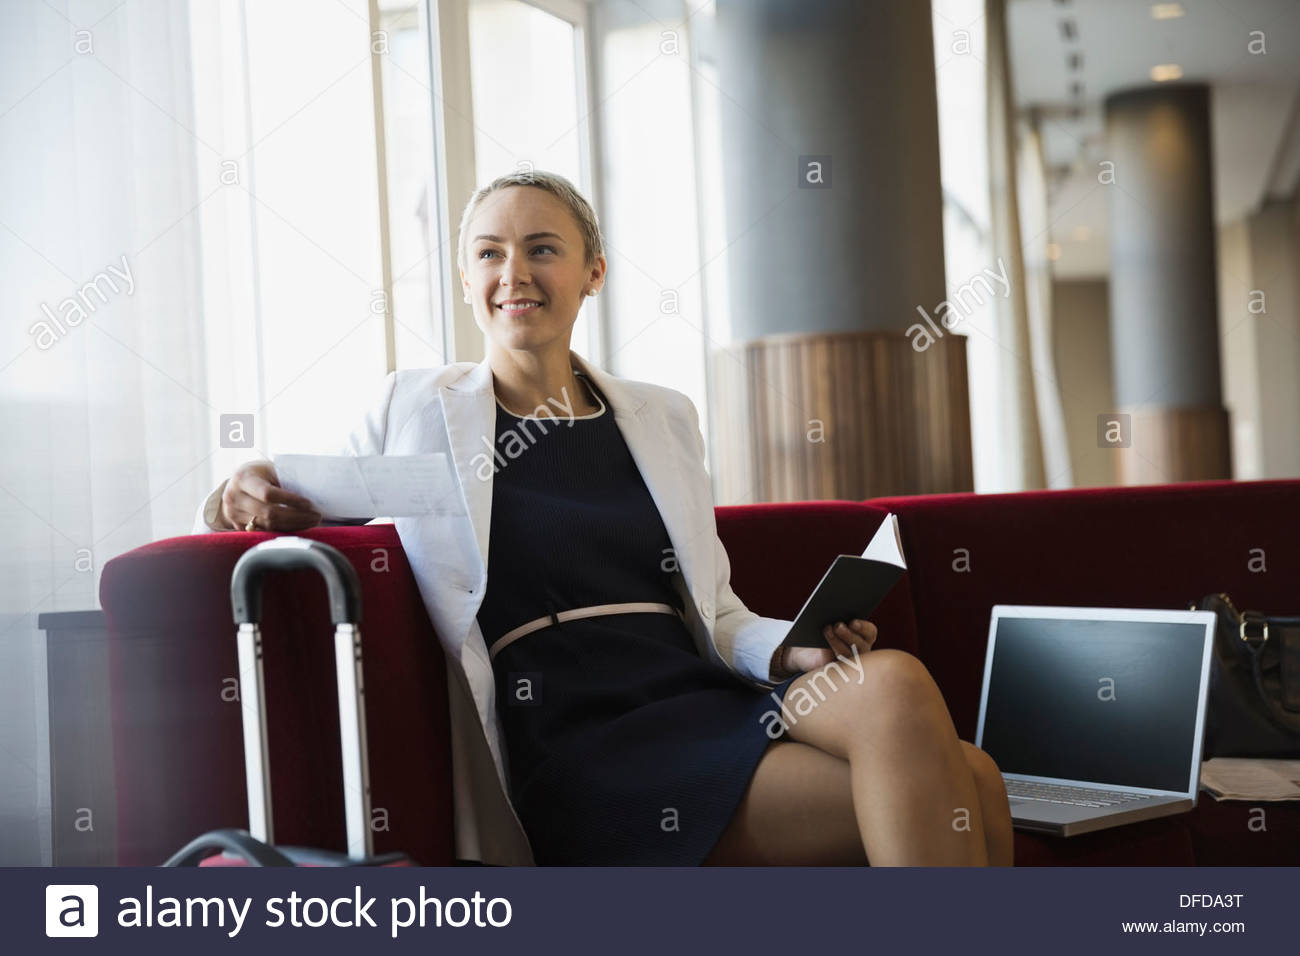 Smiling businesswoman relaxing in airport waiting area - Stock Image